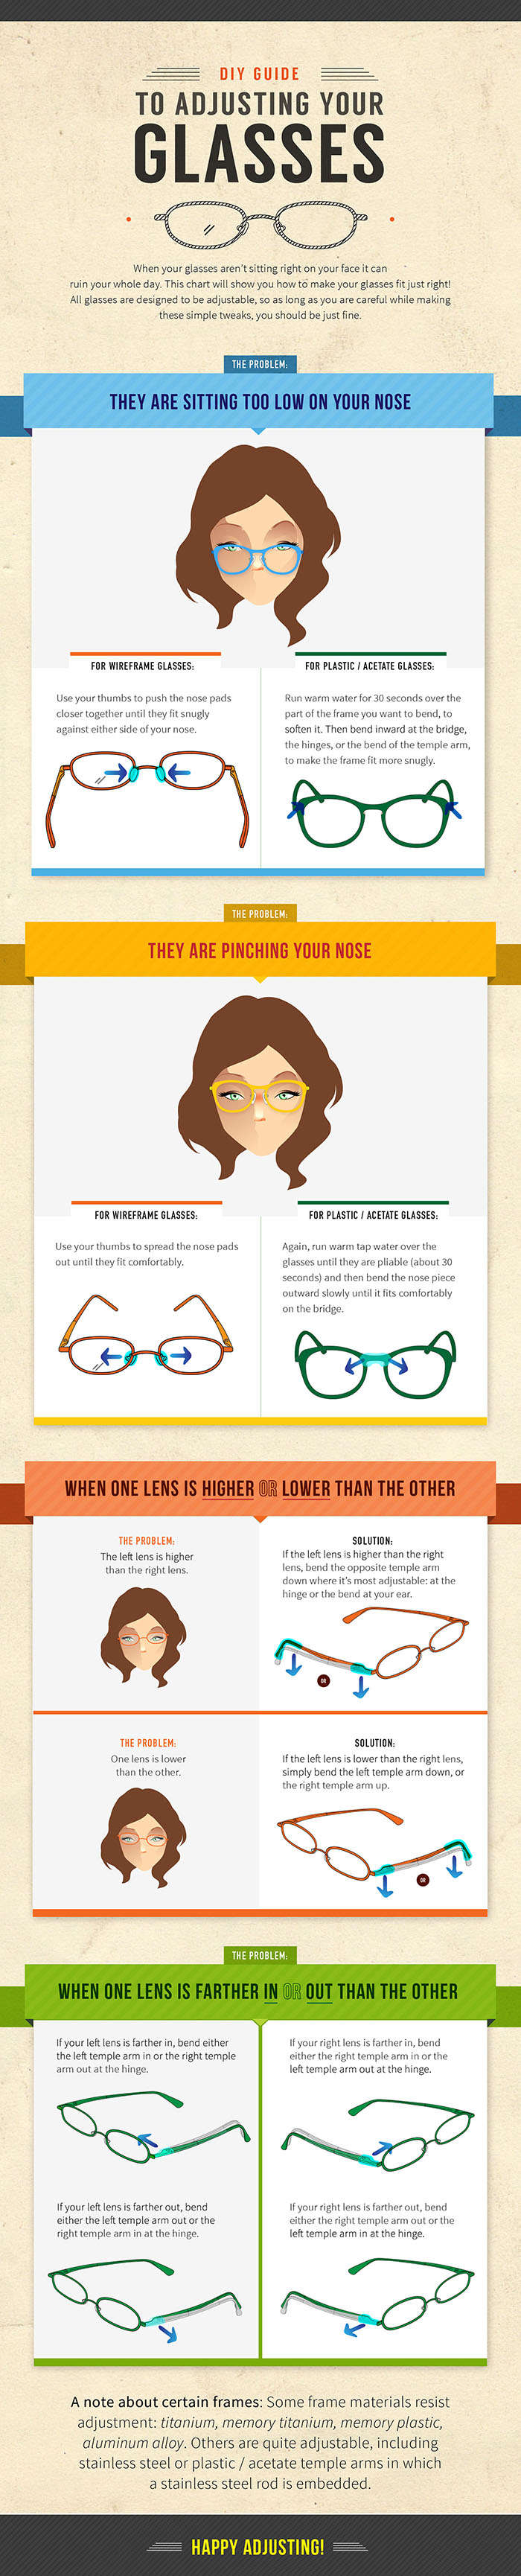 Tips to Adjust Your Glasses at Home | Things To Know 2 | Pinterest ...